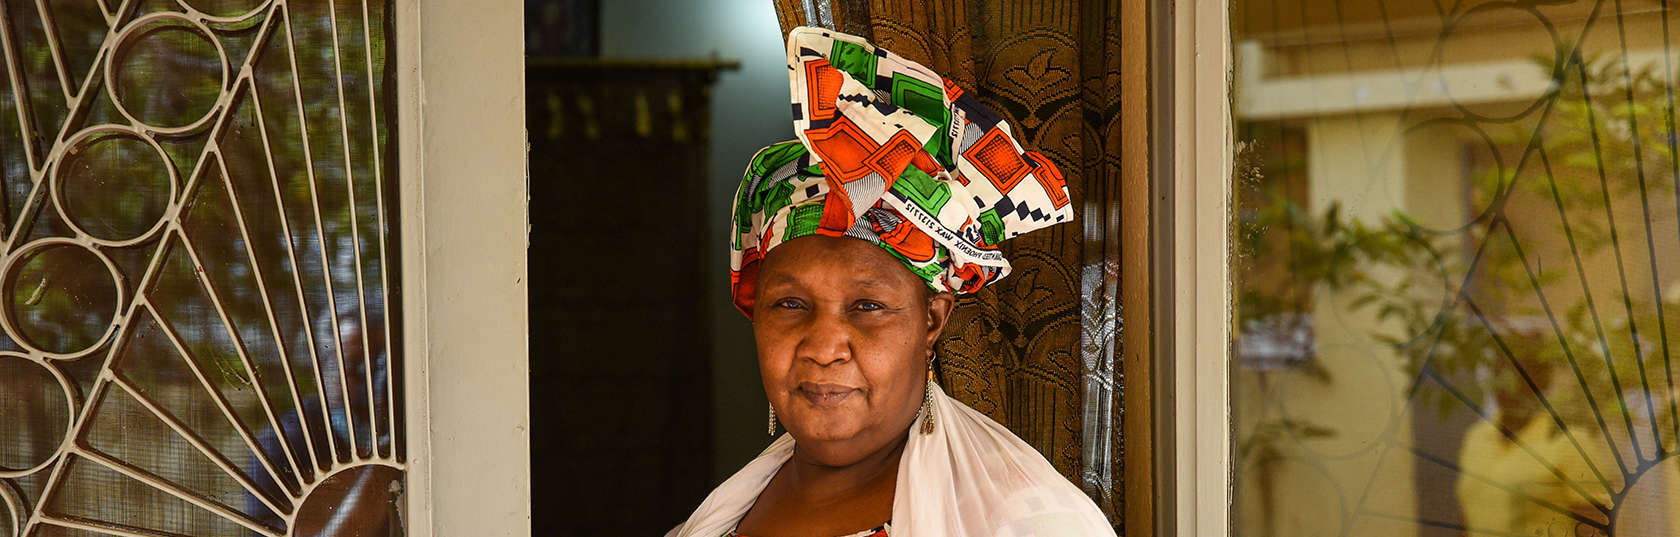 A woman wearing a large colourful head wrap standing in a doorway.